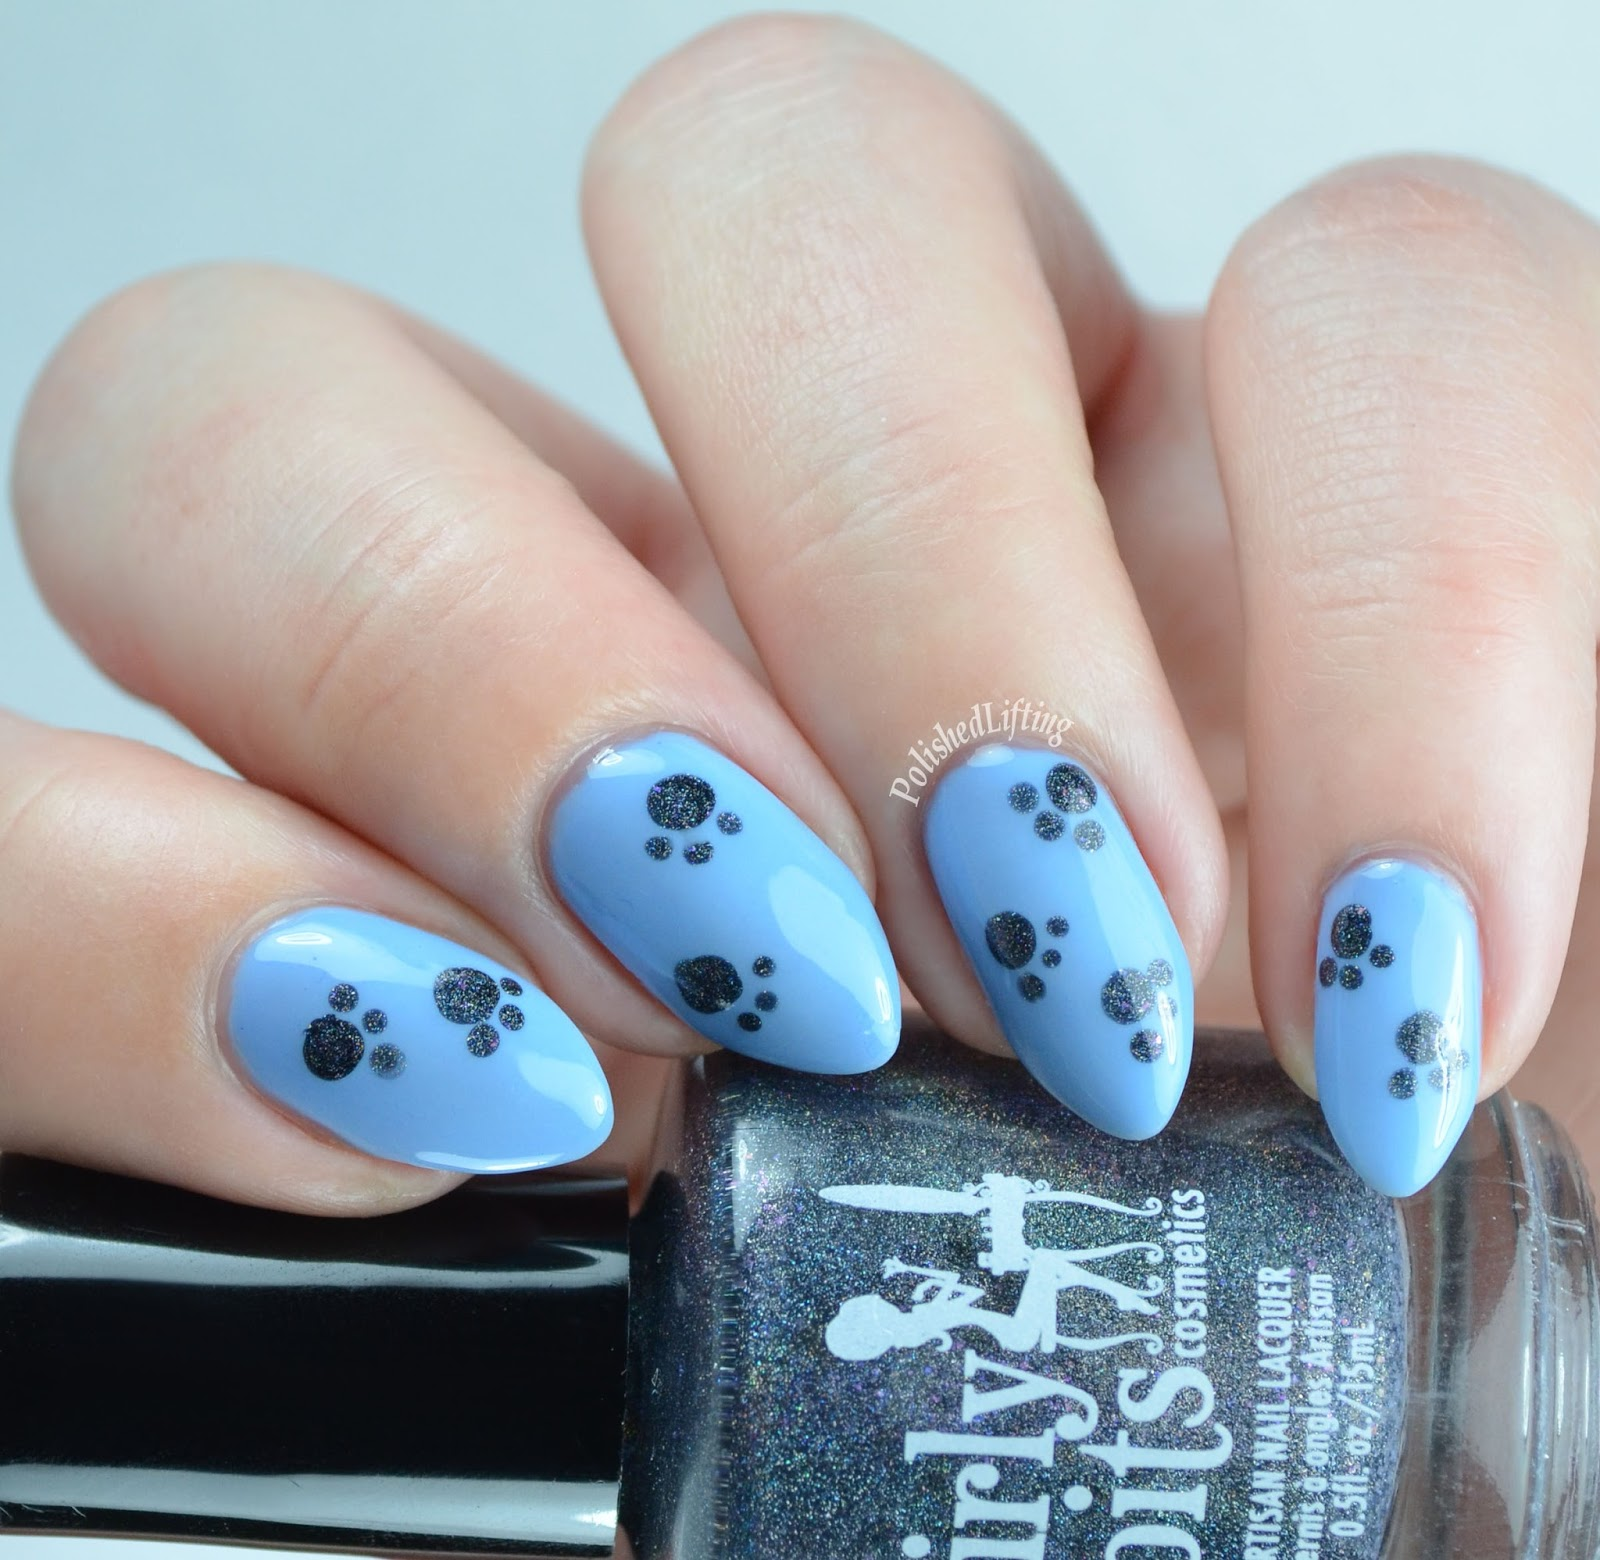 Polished Lifting Twin Paw Print Nail Art With Nichole Of Bedlam Beauty